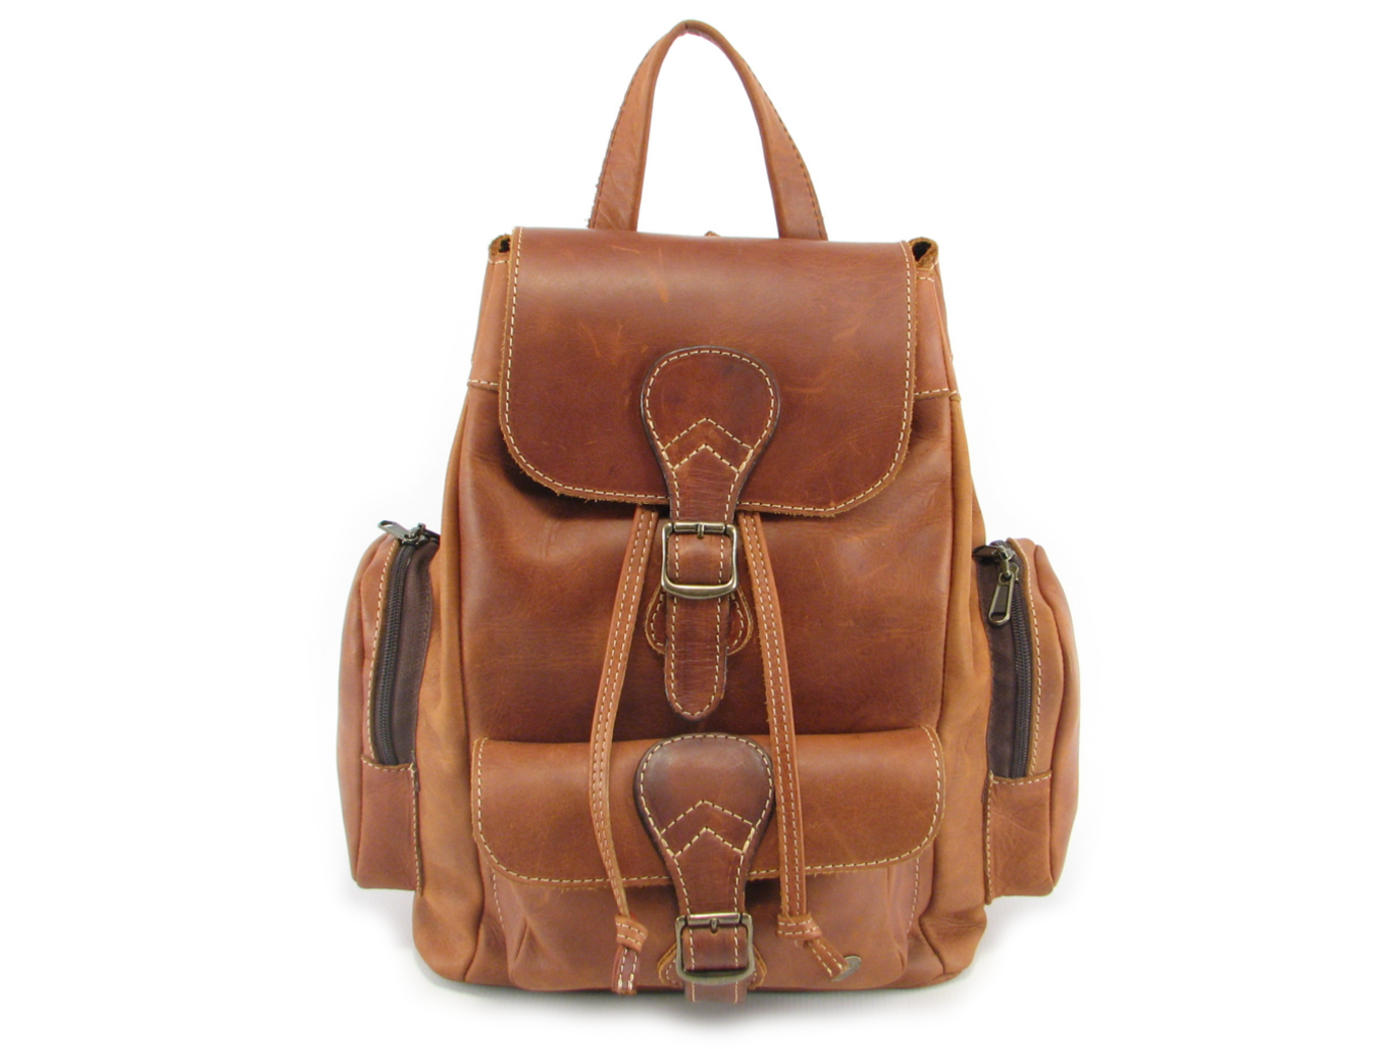 a32358e5e99e Hunters Rucksack No 2 HP7298 front leather backpack bags